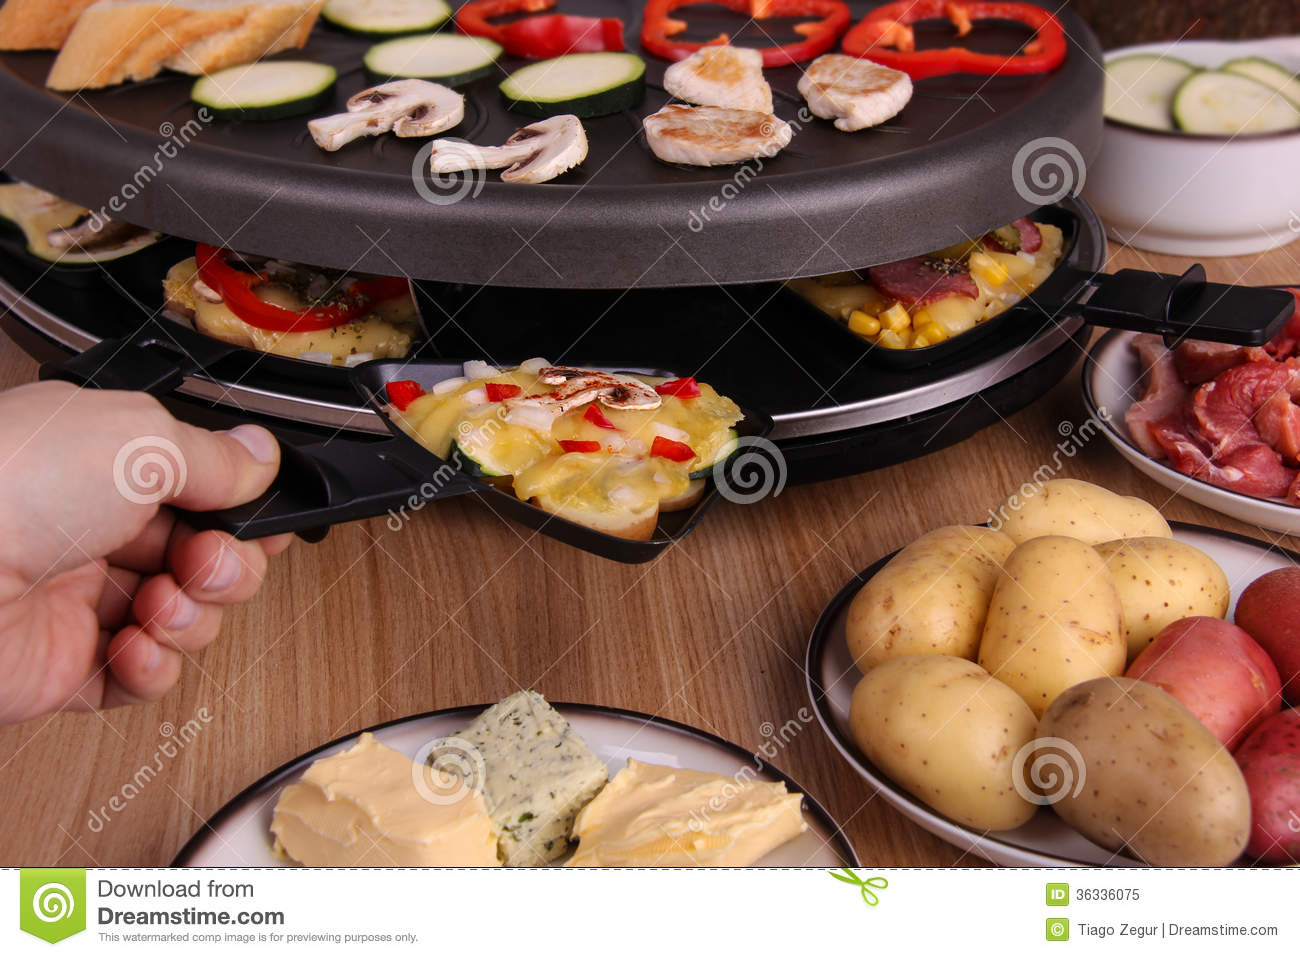 raclette dinner stock image image of culture pans. Black Bedroom Furniture Sets. Home Design Ideas